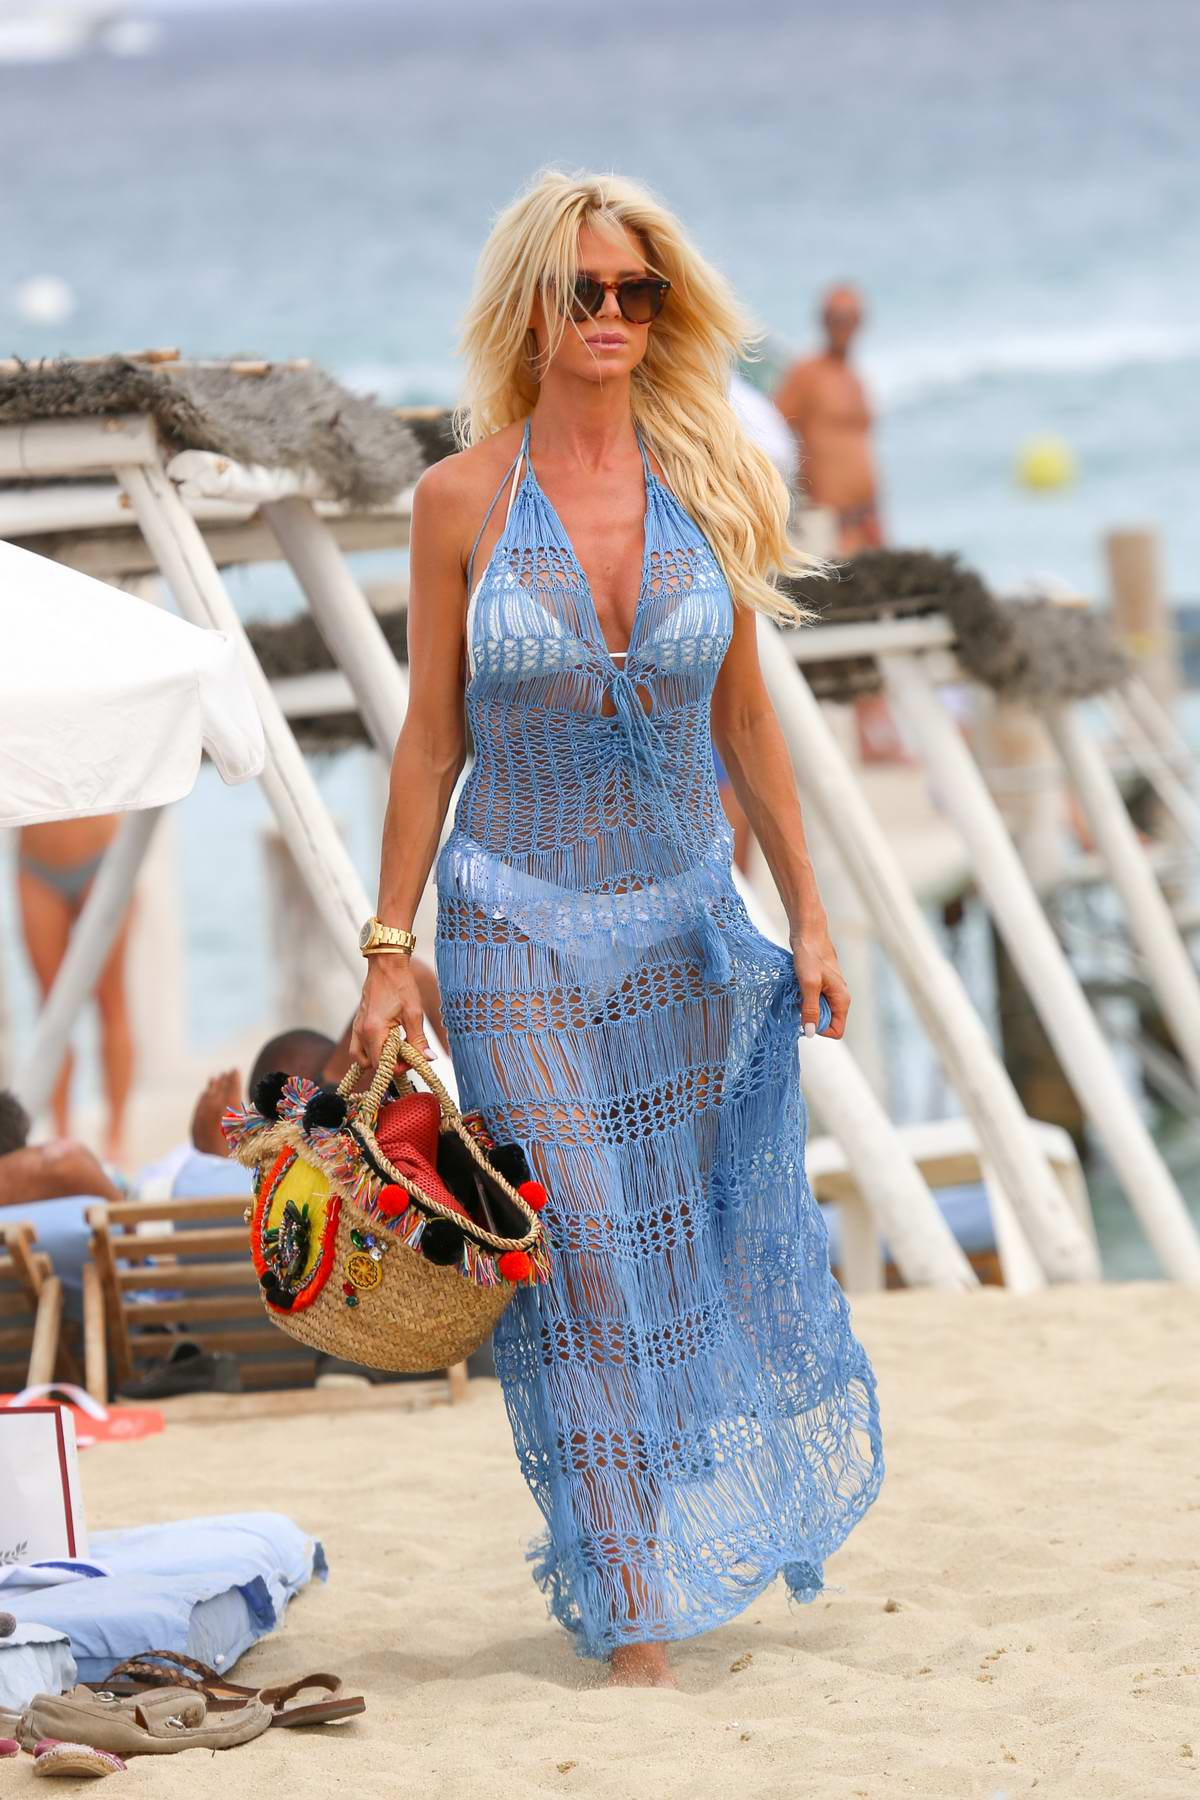 Victoria Silvstedt arrives at the Club 55 for lunch in Saint Tropez, France